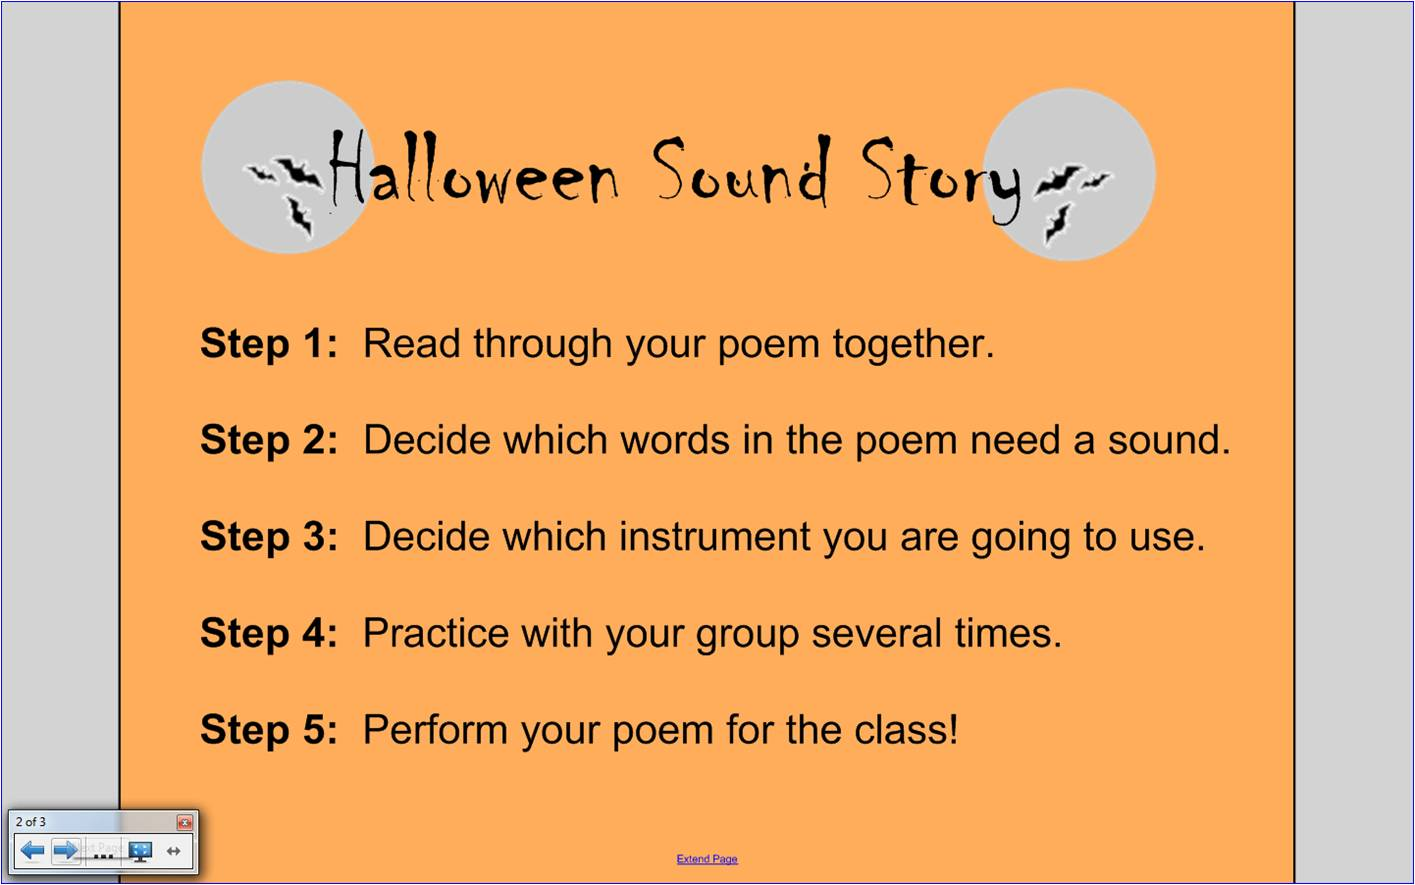 Uncategorized Spooky Halloween Poems we music hses halloween sound stories stories